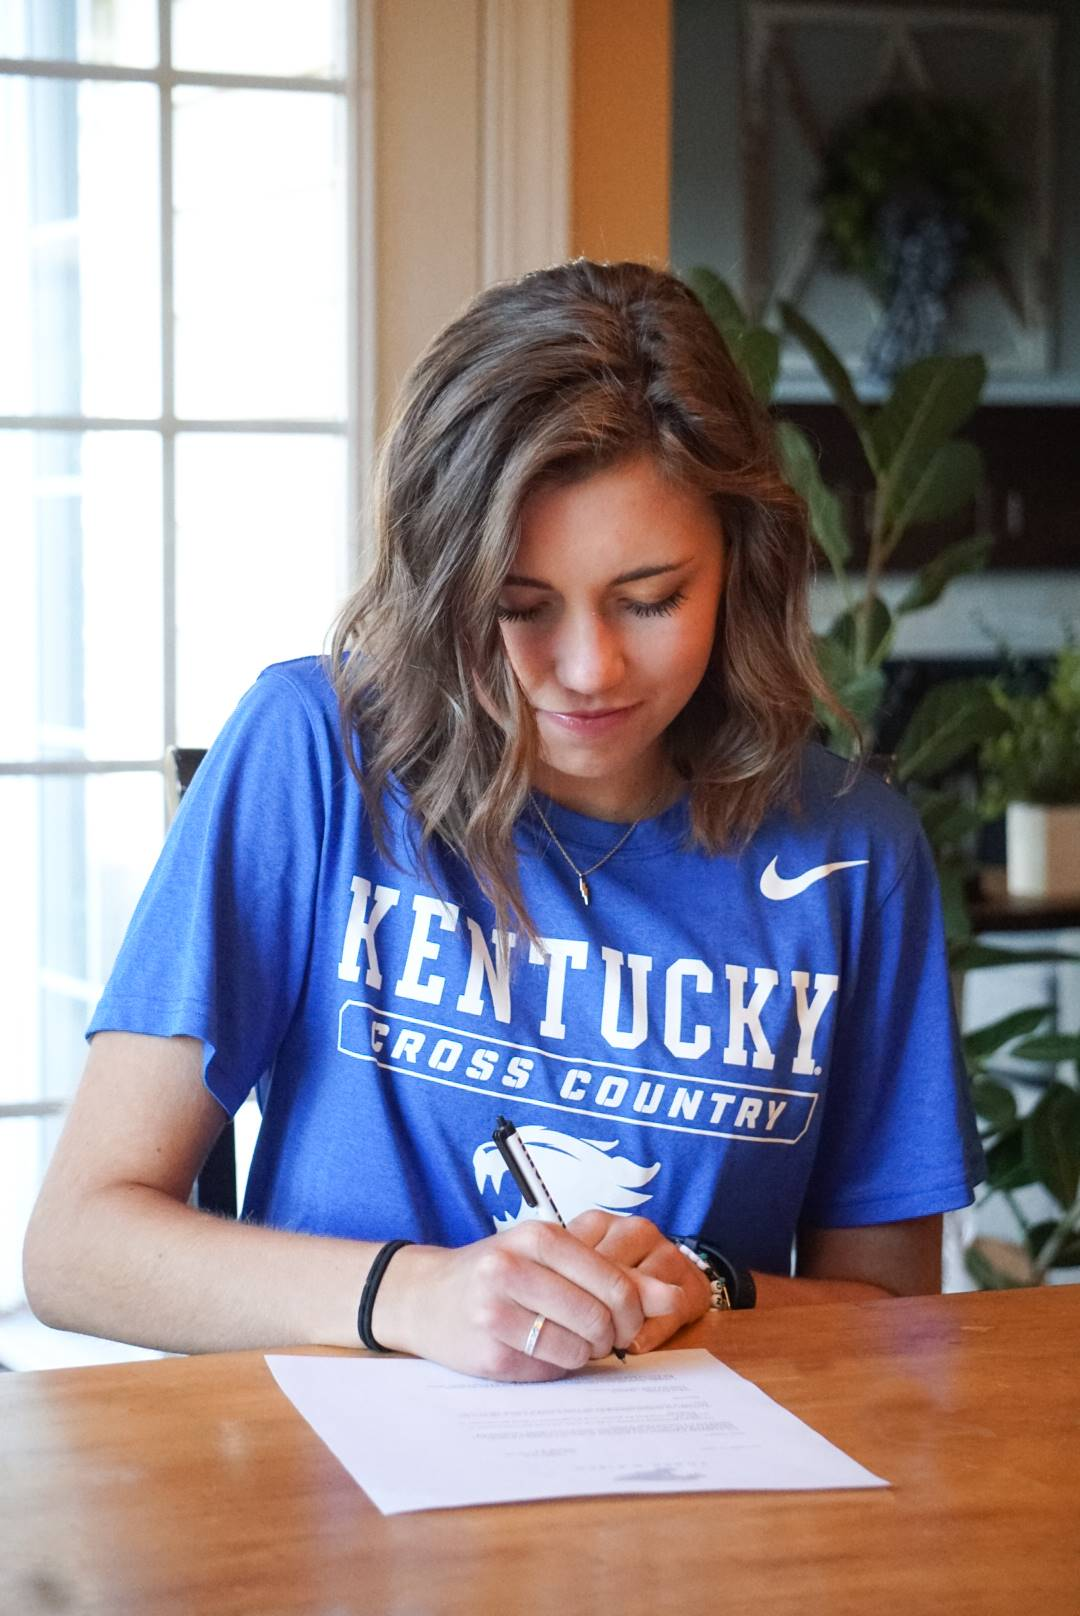 Maggie Aydt signs with the University of Kentucky for Cross Country/Track and Field